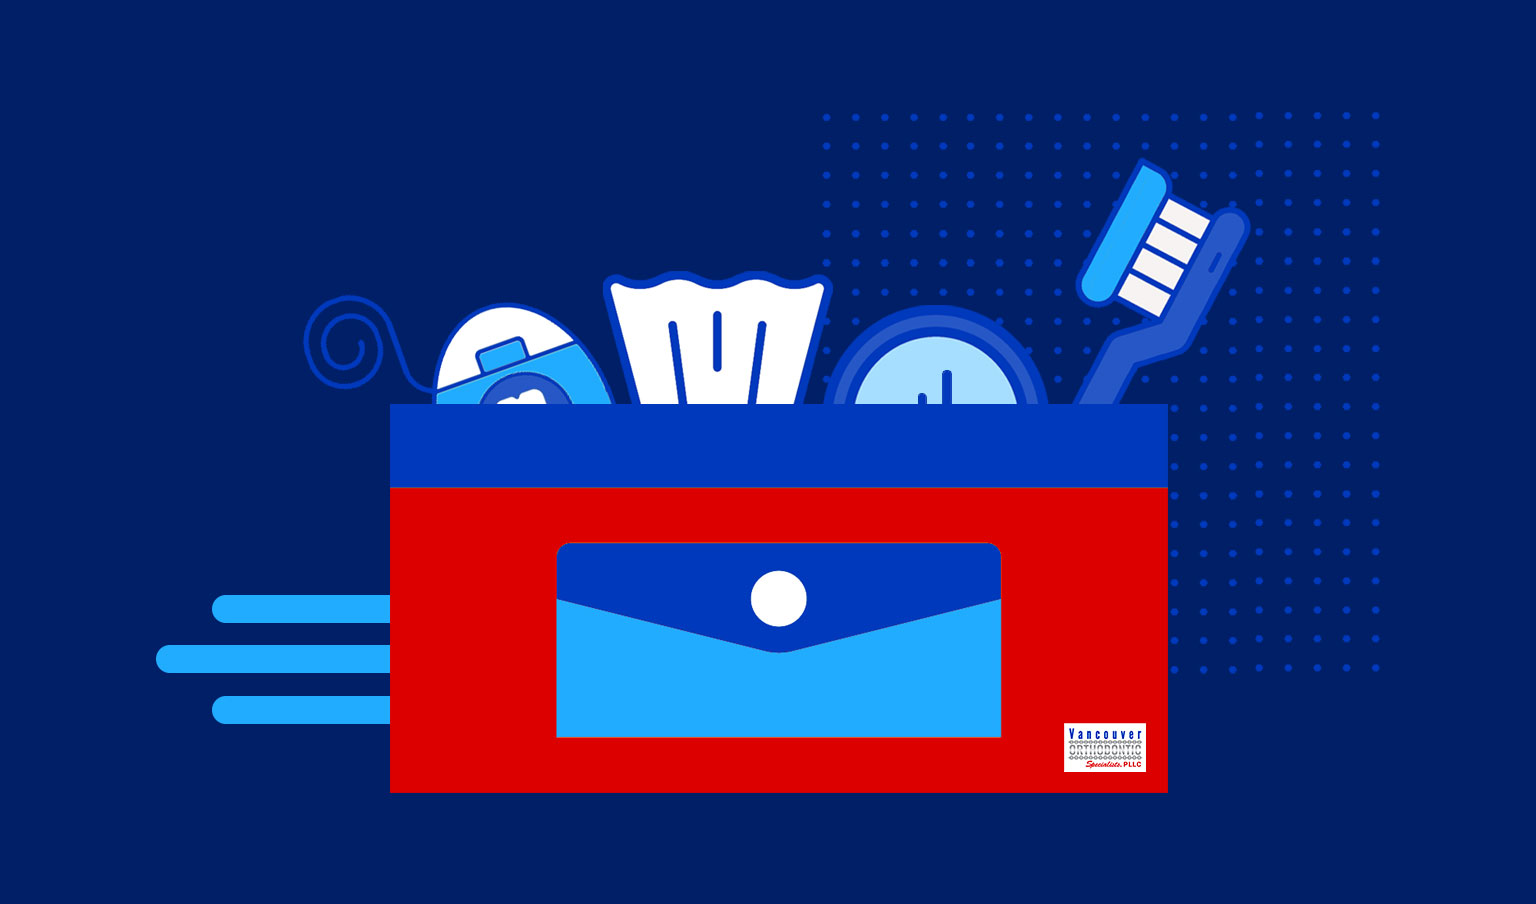 illustration of a colorful blue and red carrying case holding toothbrush, floss, tissue, and compact mirror for a braces survival kit